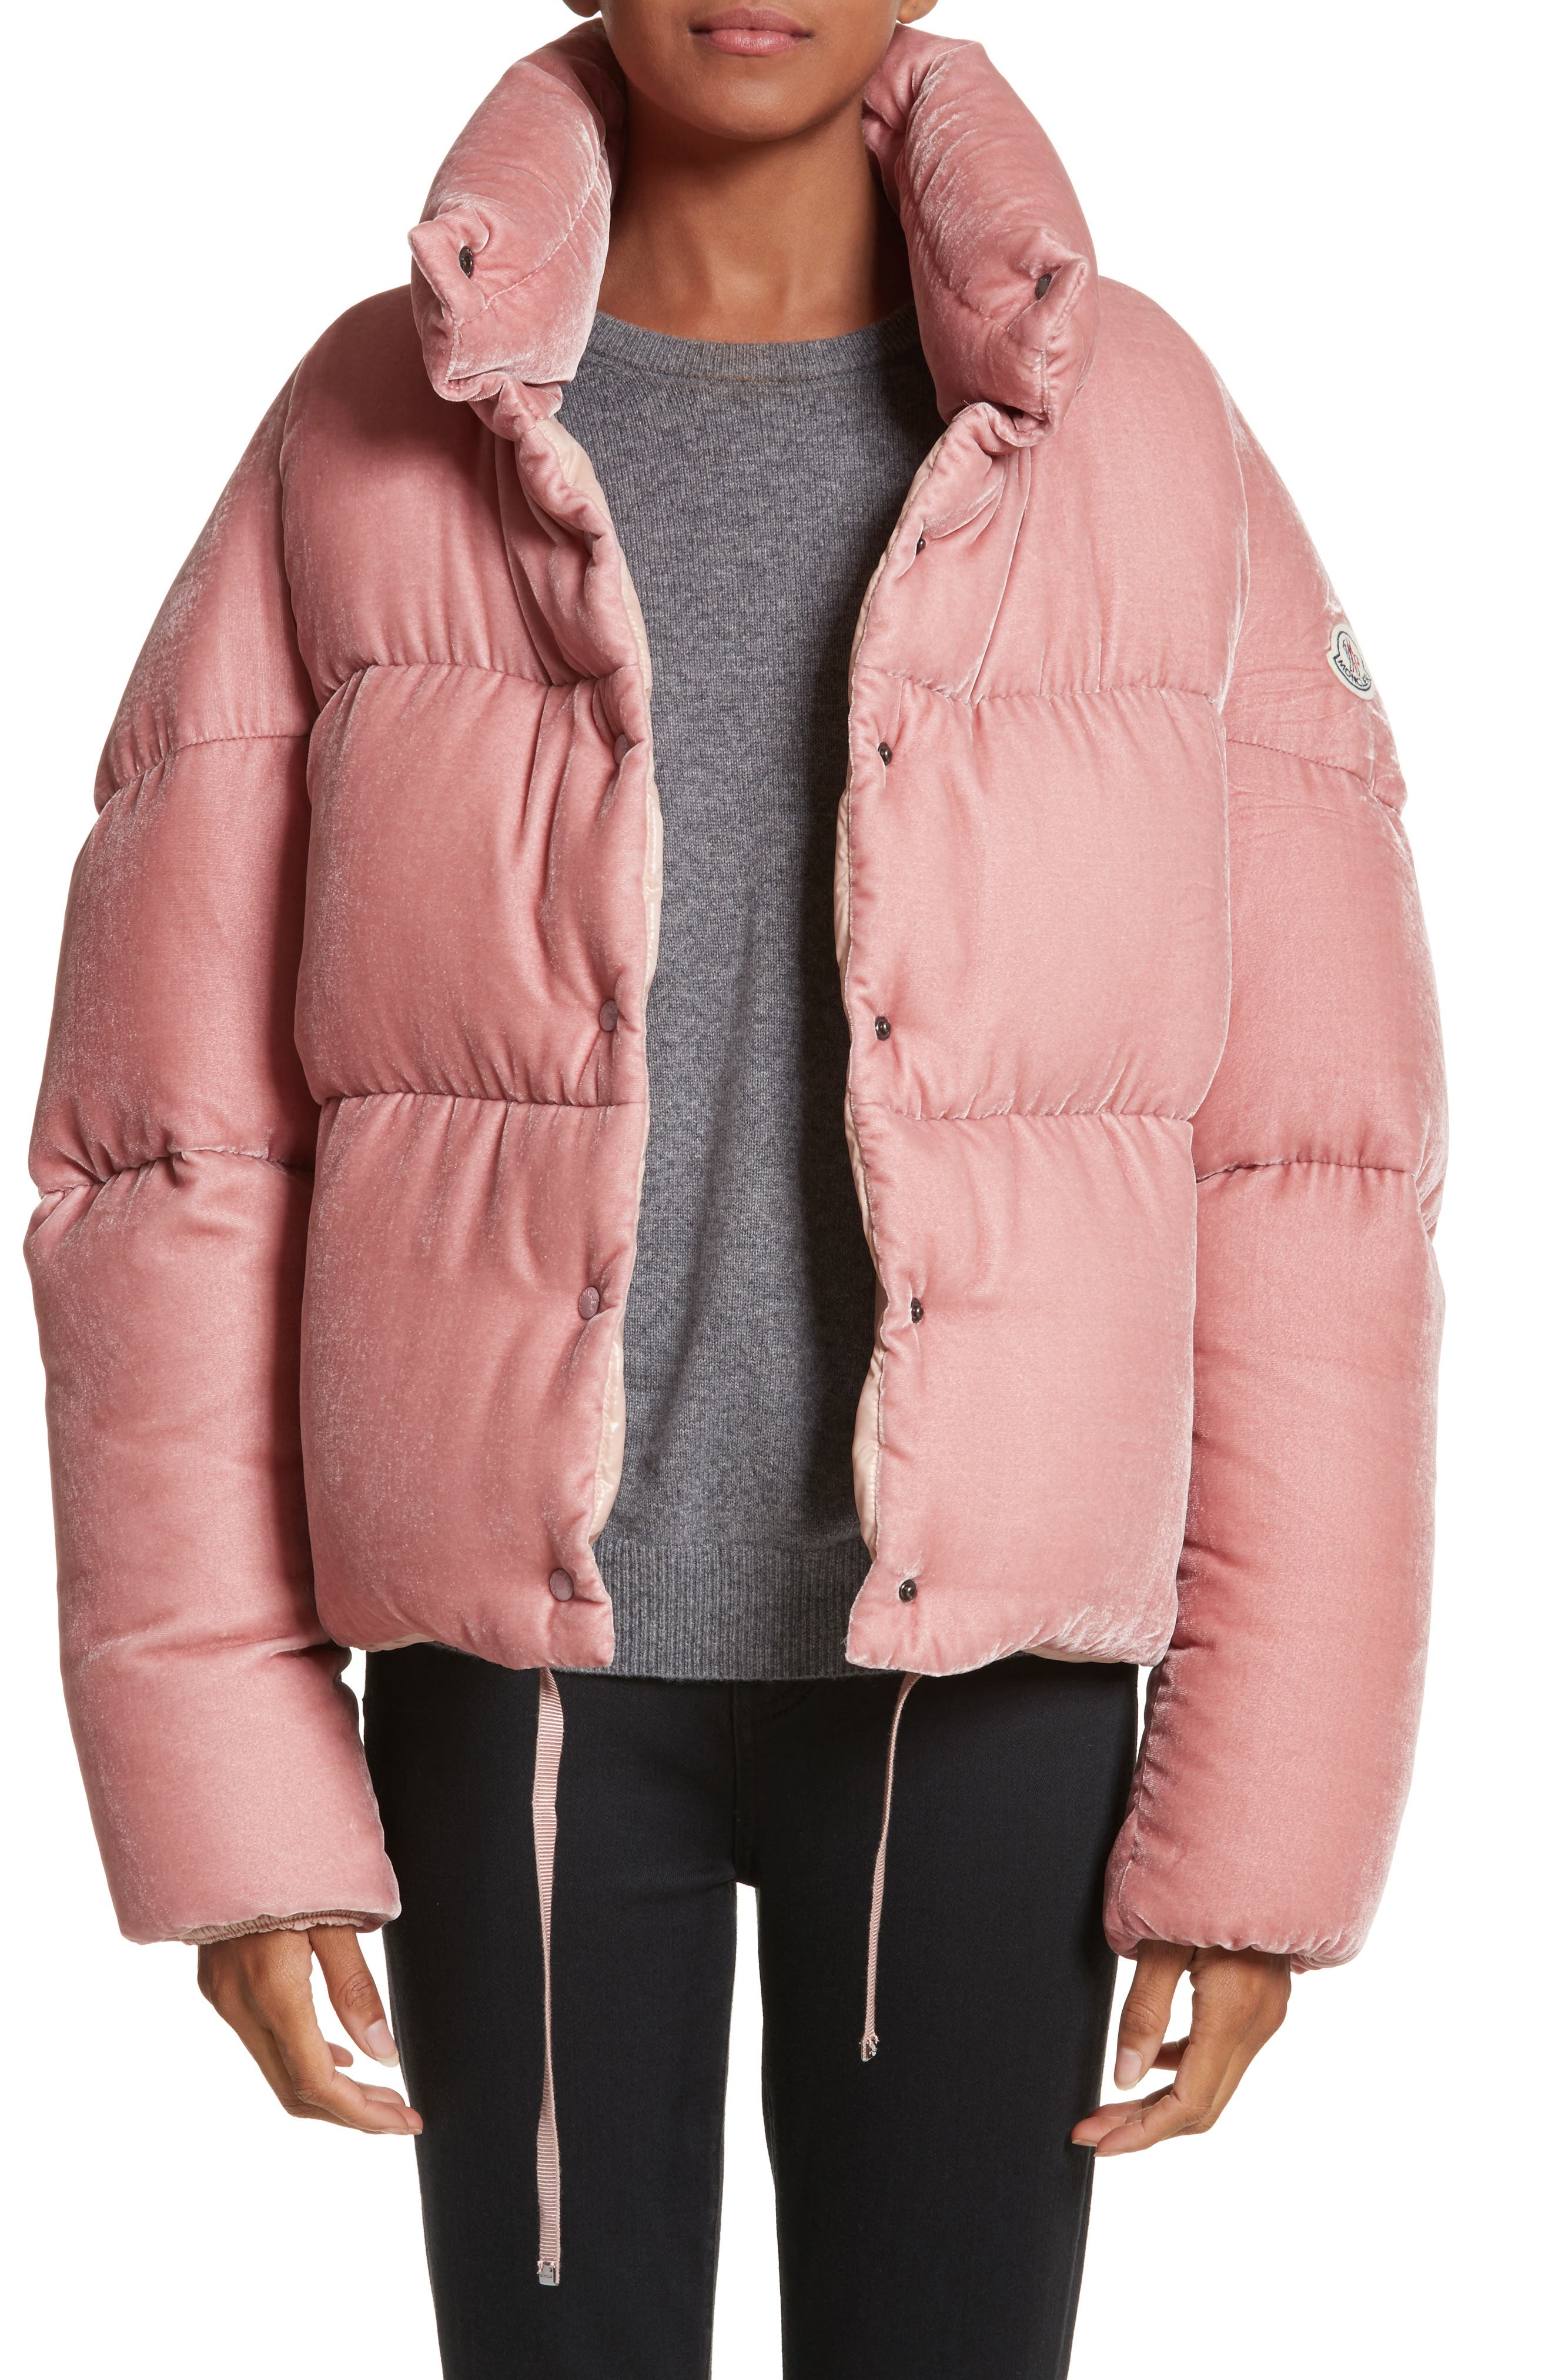 Cercis Velvet Quilted Down Puffer Coat,                         Main,                         color, 669